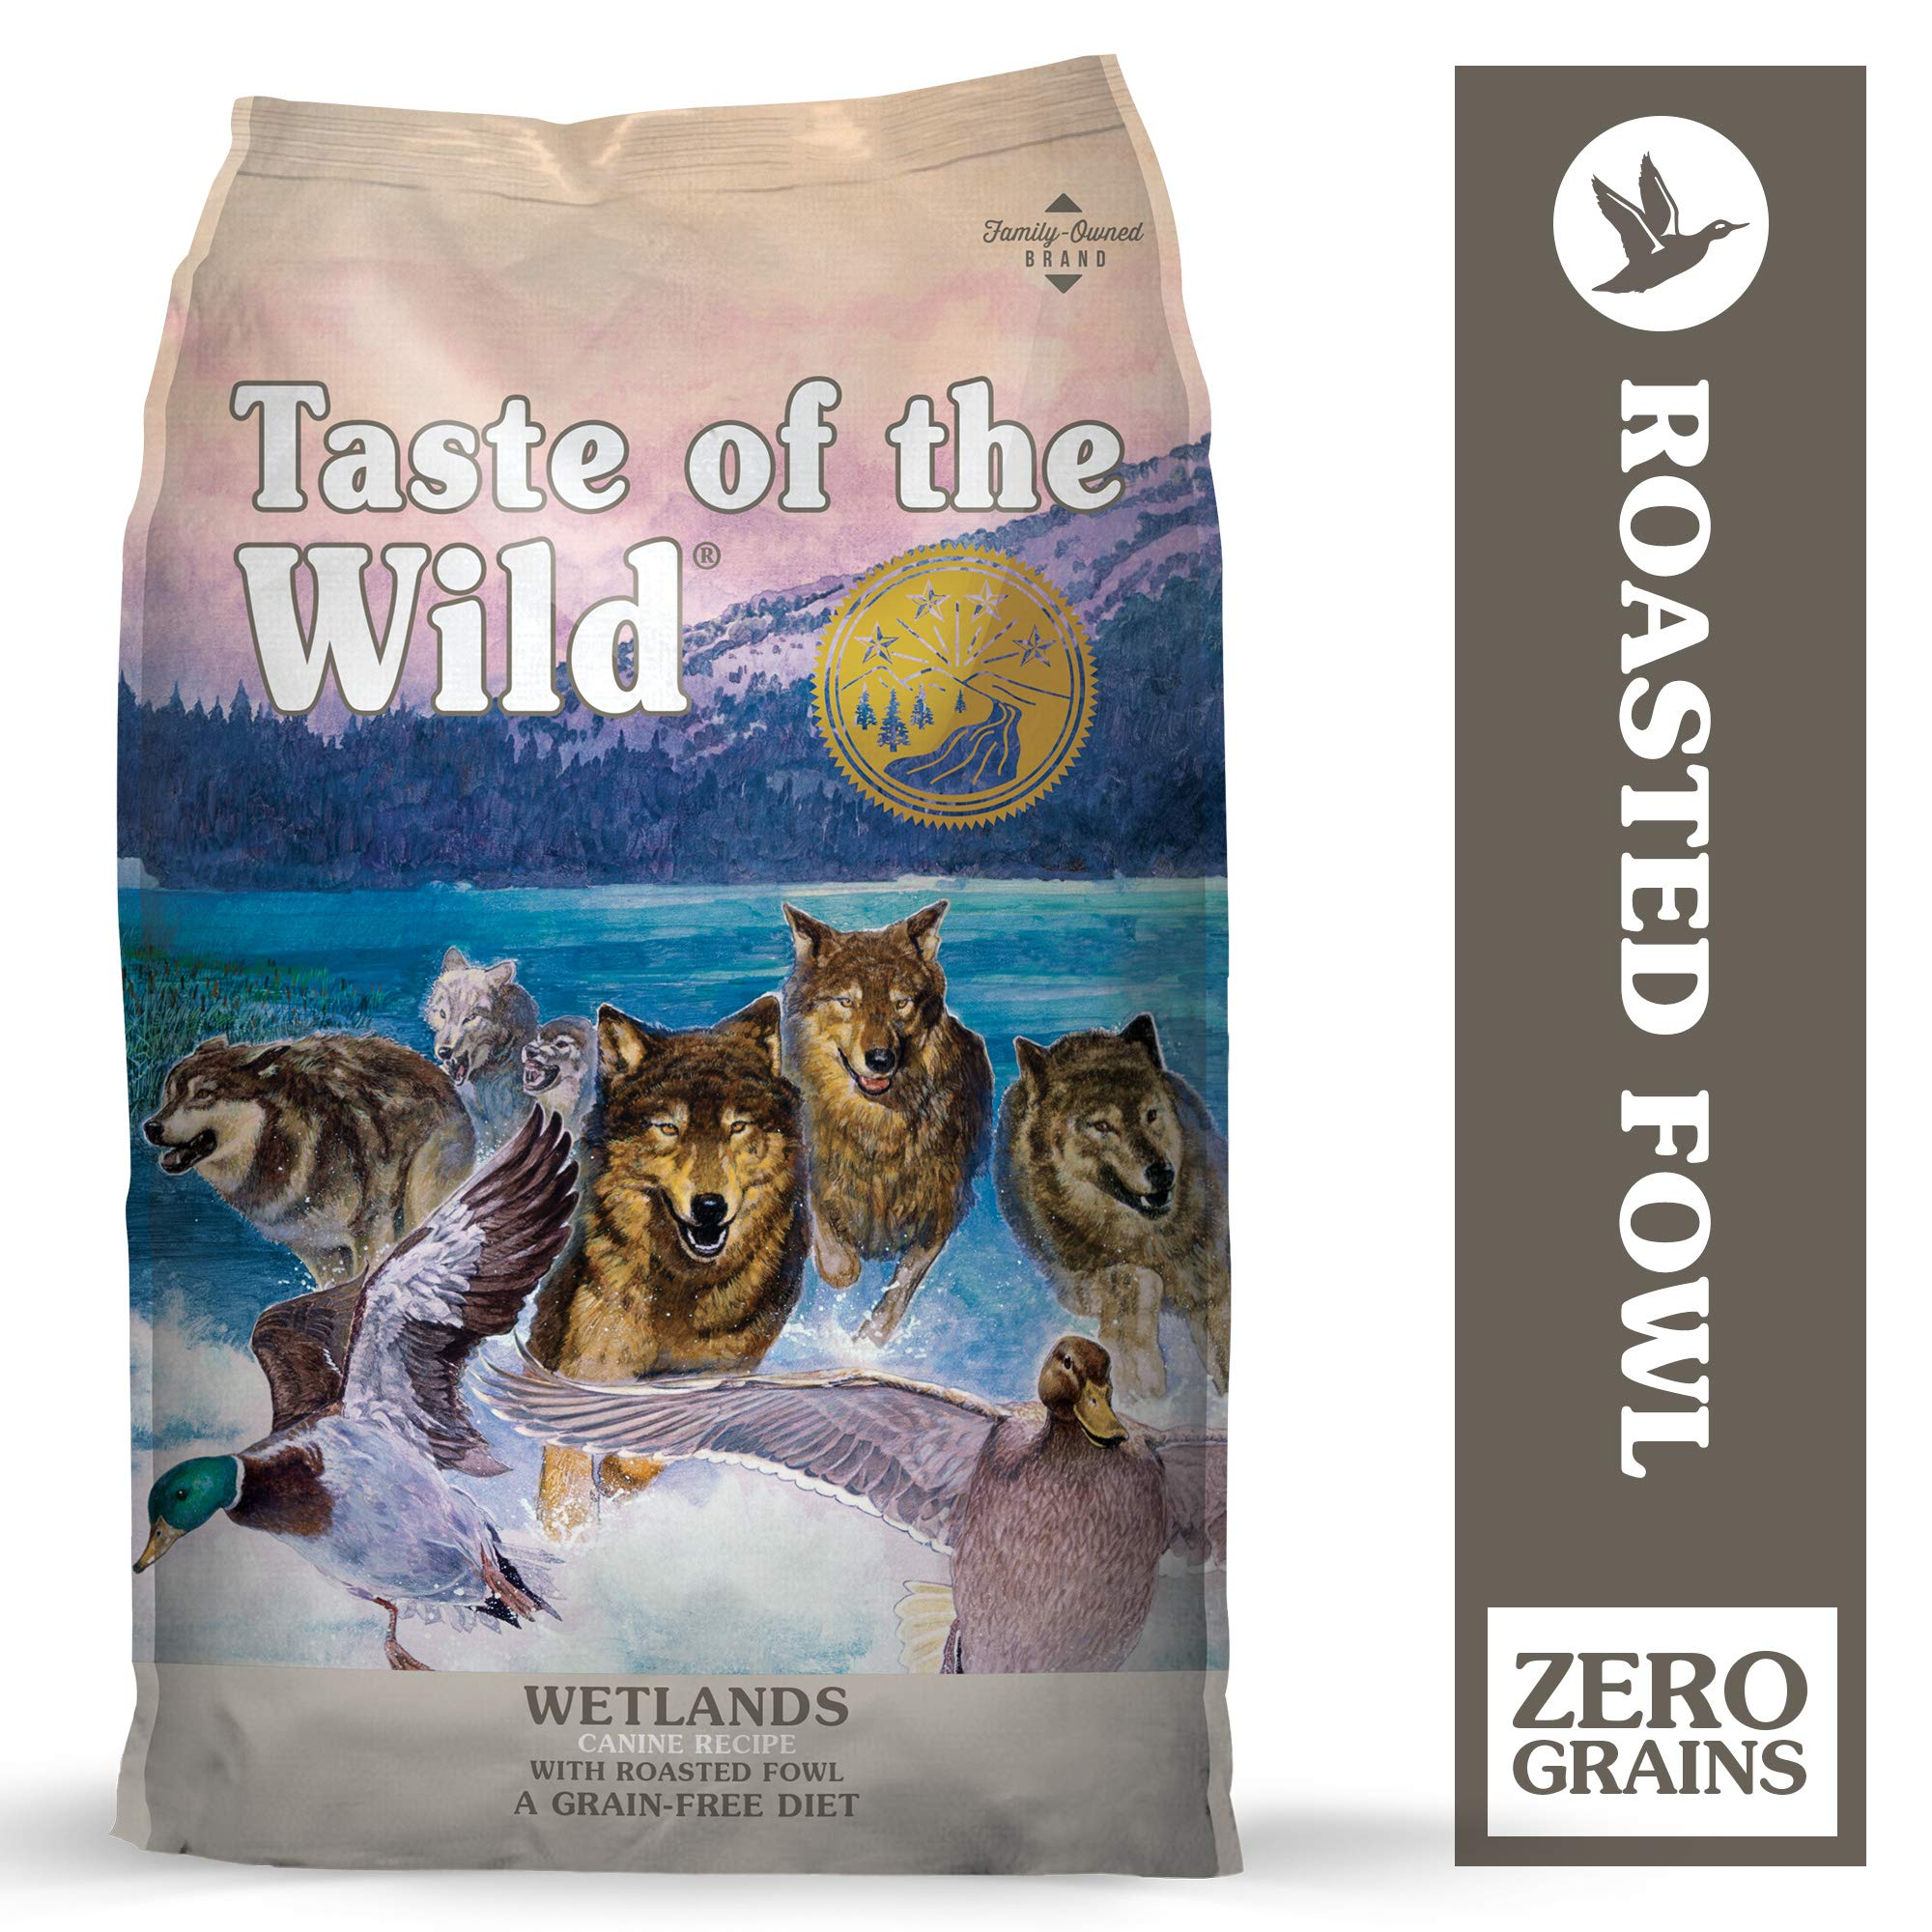 Taste of the Wild Grain Free High Protein Real Meat Recipe Wetlands Premium Dry Dog Food 28lb by Taste of the Wild